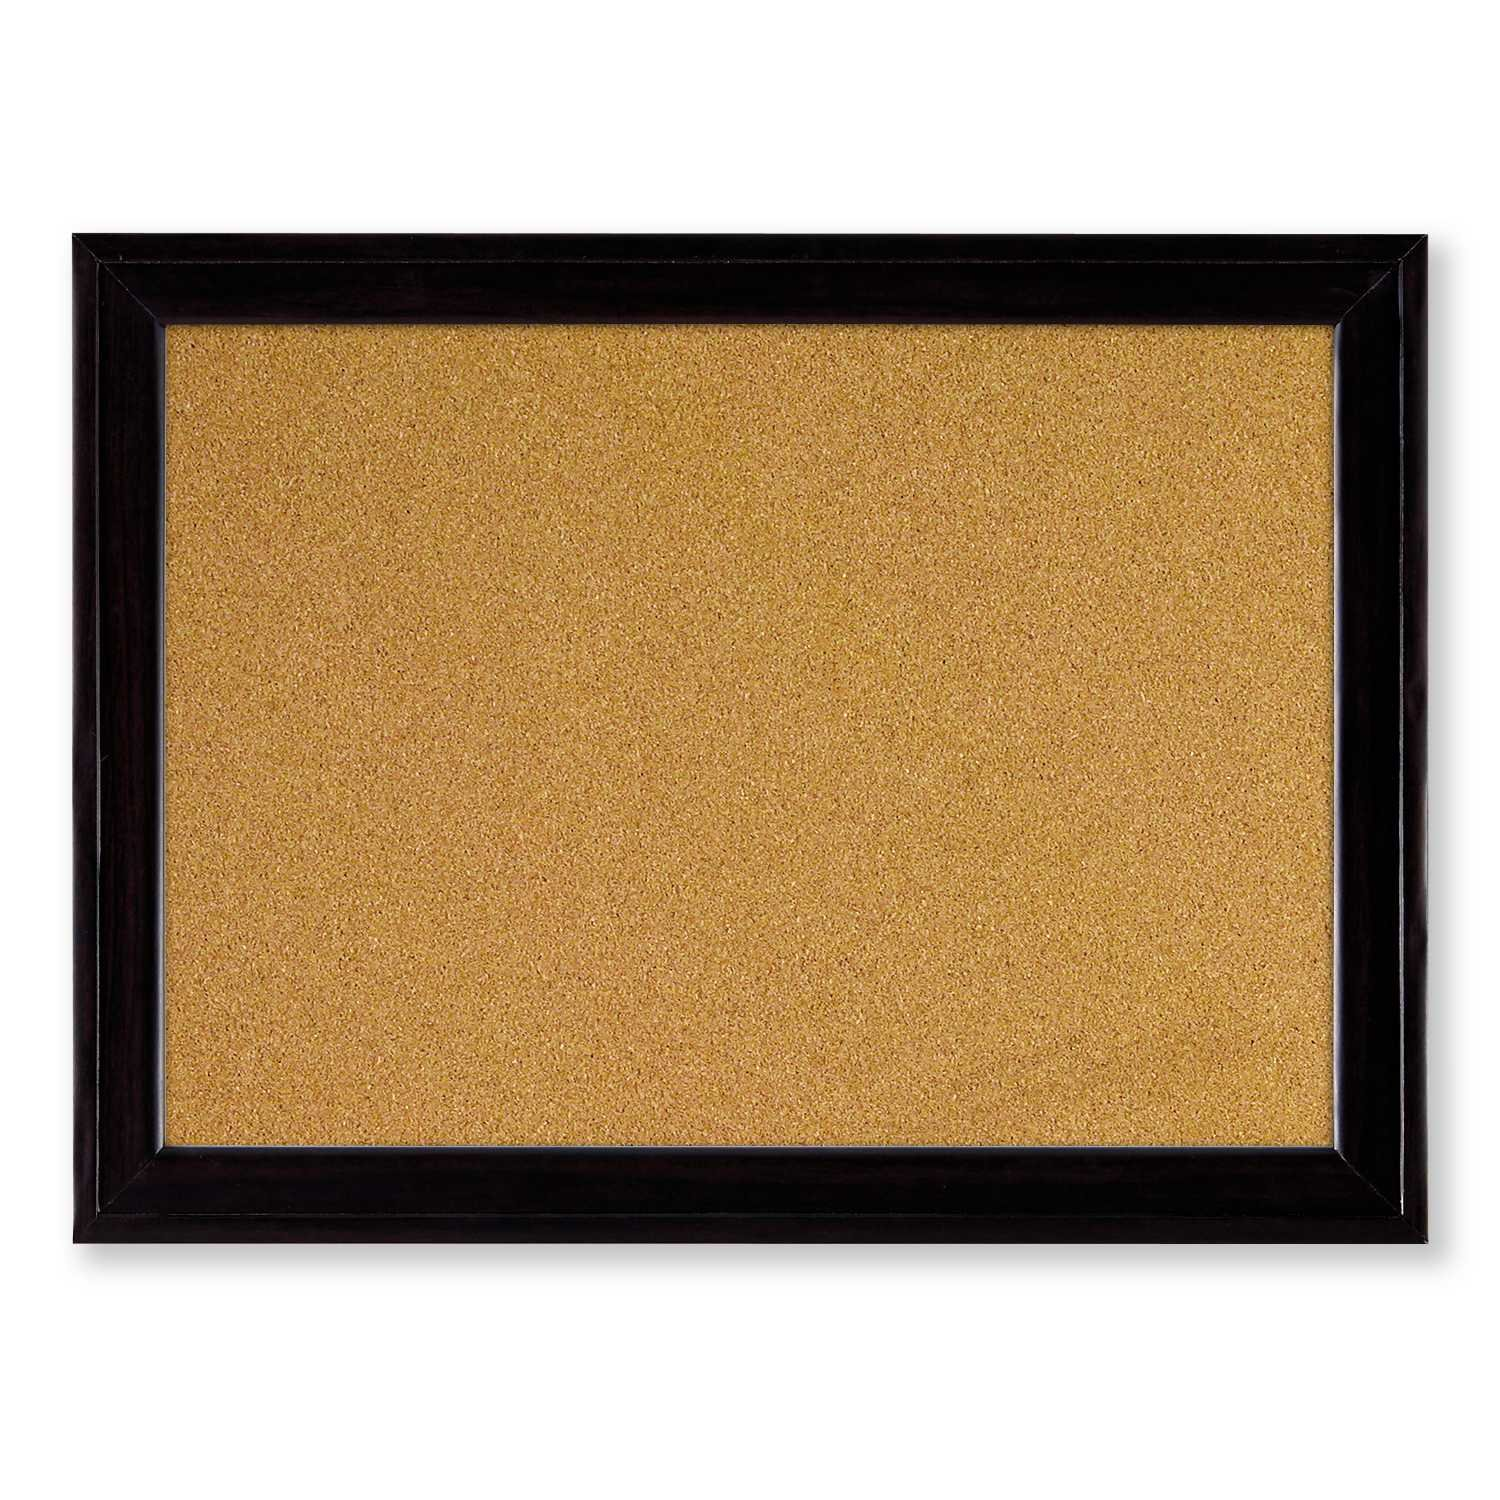 Cork Bulletin Board Amazoncom Quartet Cork Bulletin Board 11 X 17 Inches Home